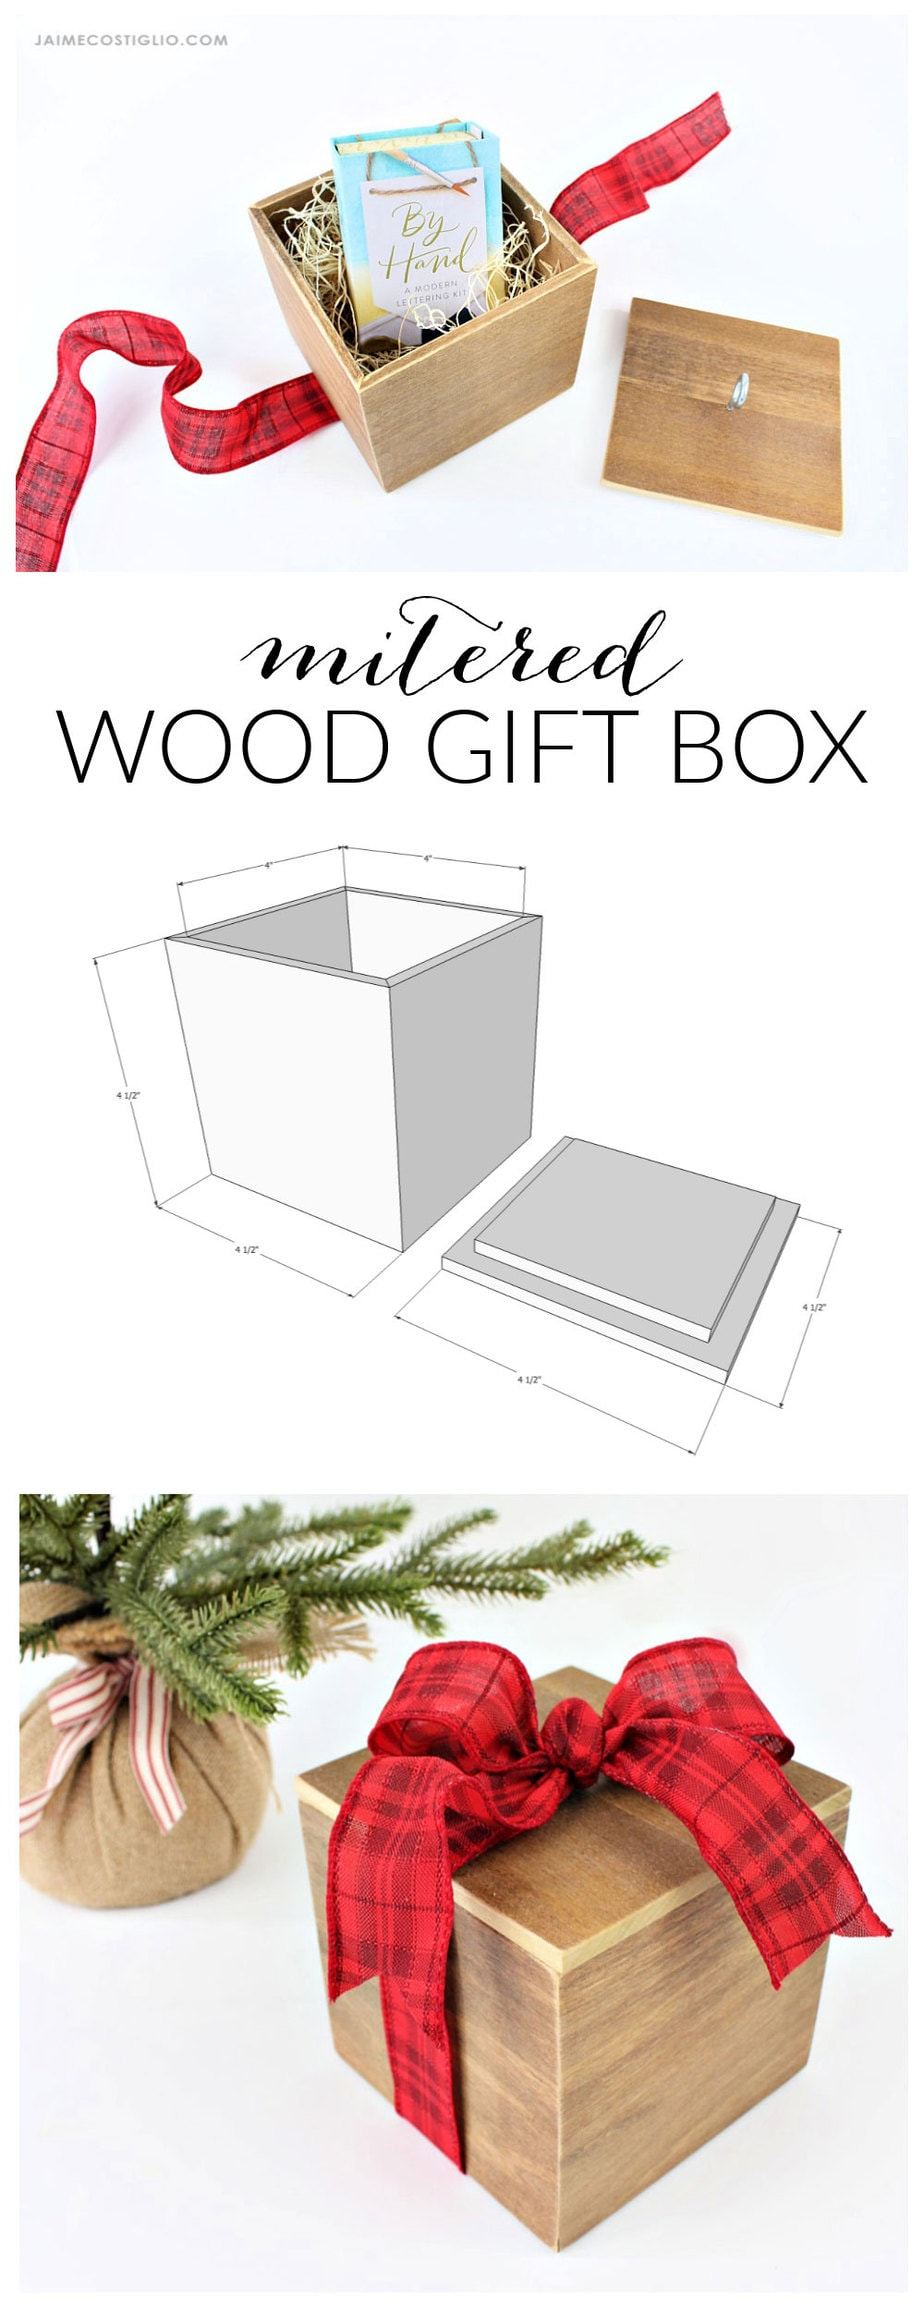 diy mitered wood gift box free plans